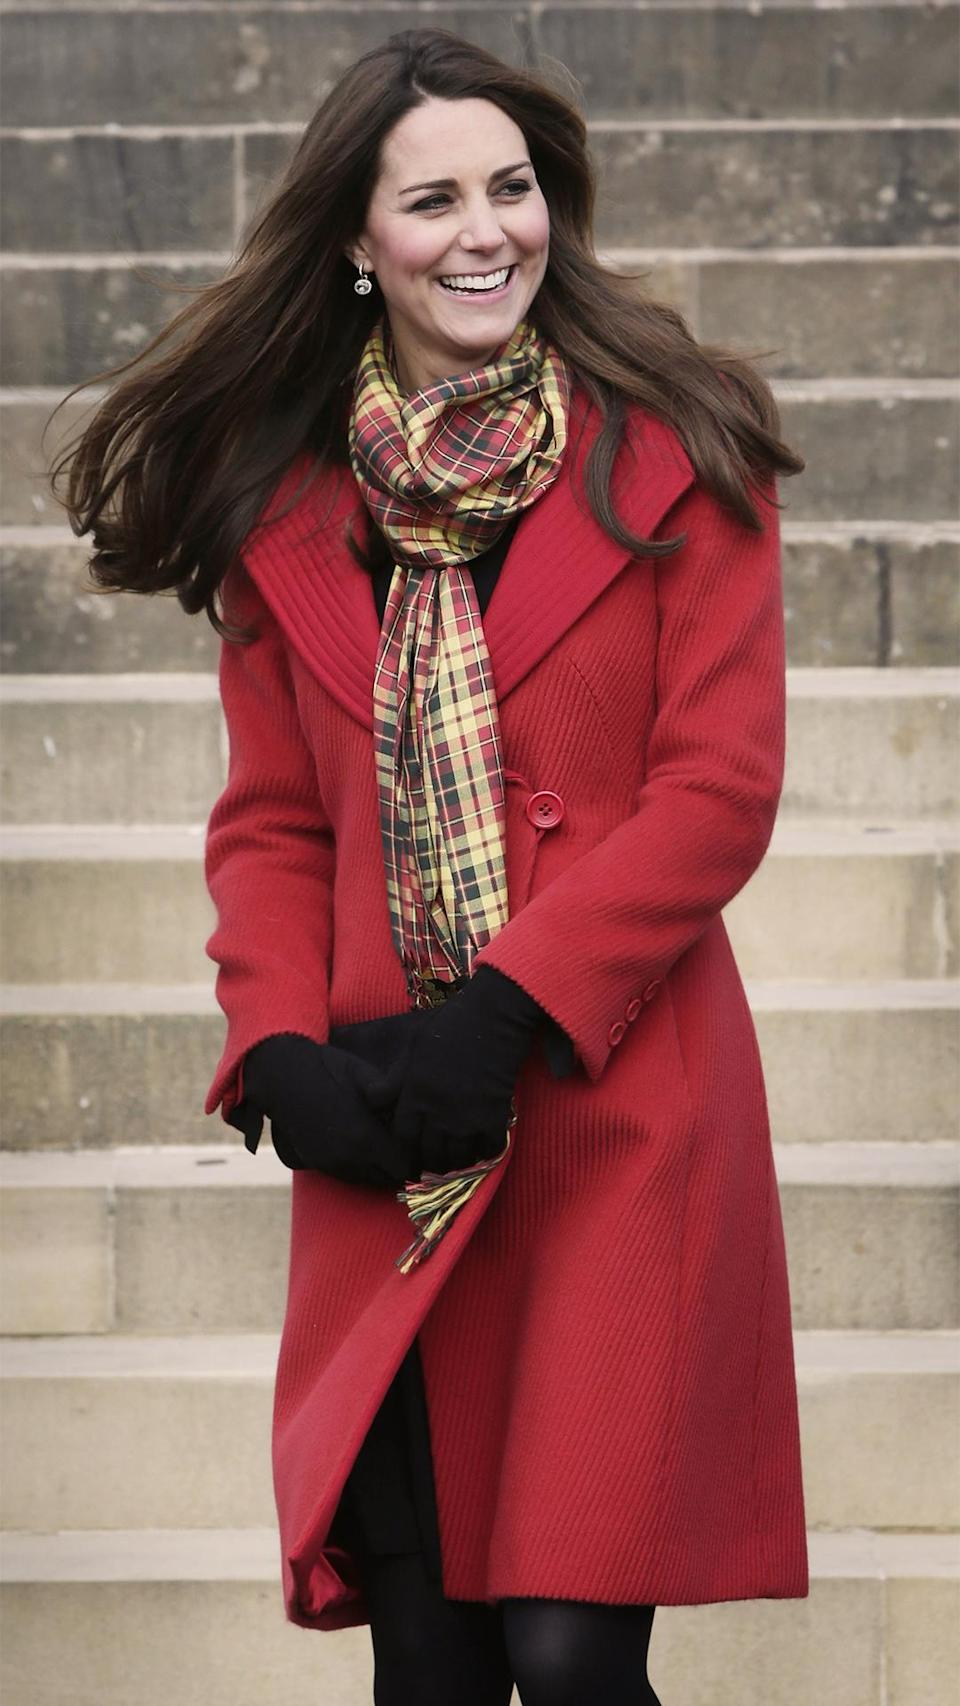 <p>A yellow and red patterned scarf matched Kate's coat during a chilly March 2013 trip to Scotland.</p>